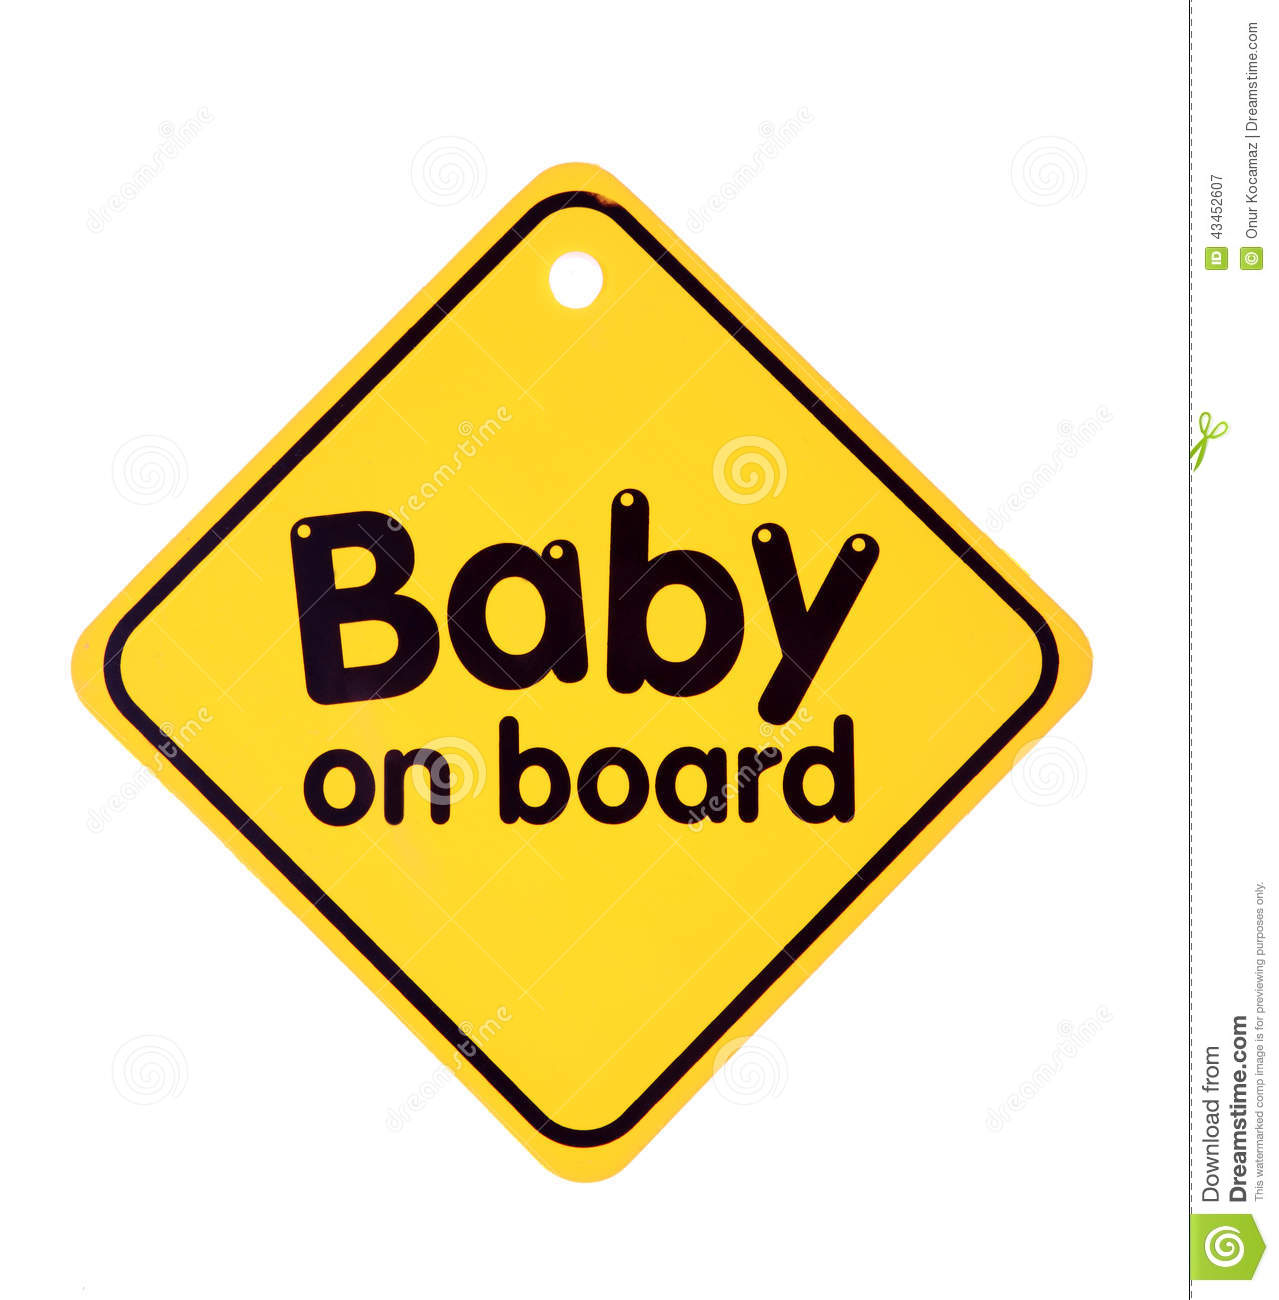 Baby On Board Sign Stock Photo  Image 43452607. Air Conditioning Repair Camarillo. Microsoft Dynamic Gp Training. Detoxification Of Alcohol Drug Rehab Tampa Fl. Huntington National Bank Online. Medical Lab Technician Training. Square Body Chevy Trucks Careers In Theology. Domin 8 Enterprise Solutions. Influence Mapping Software Moving To Wyoming